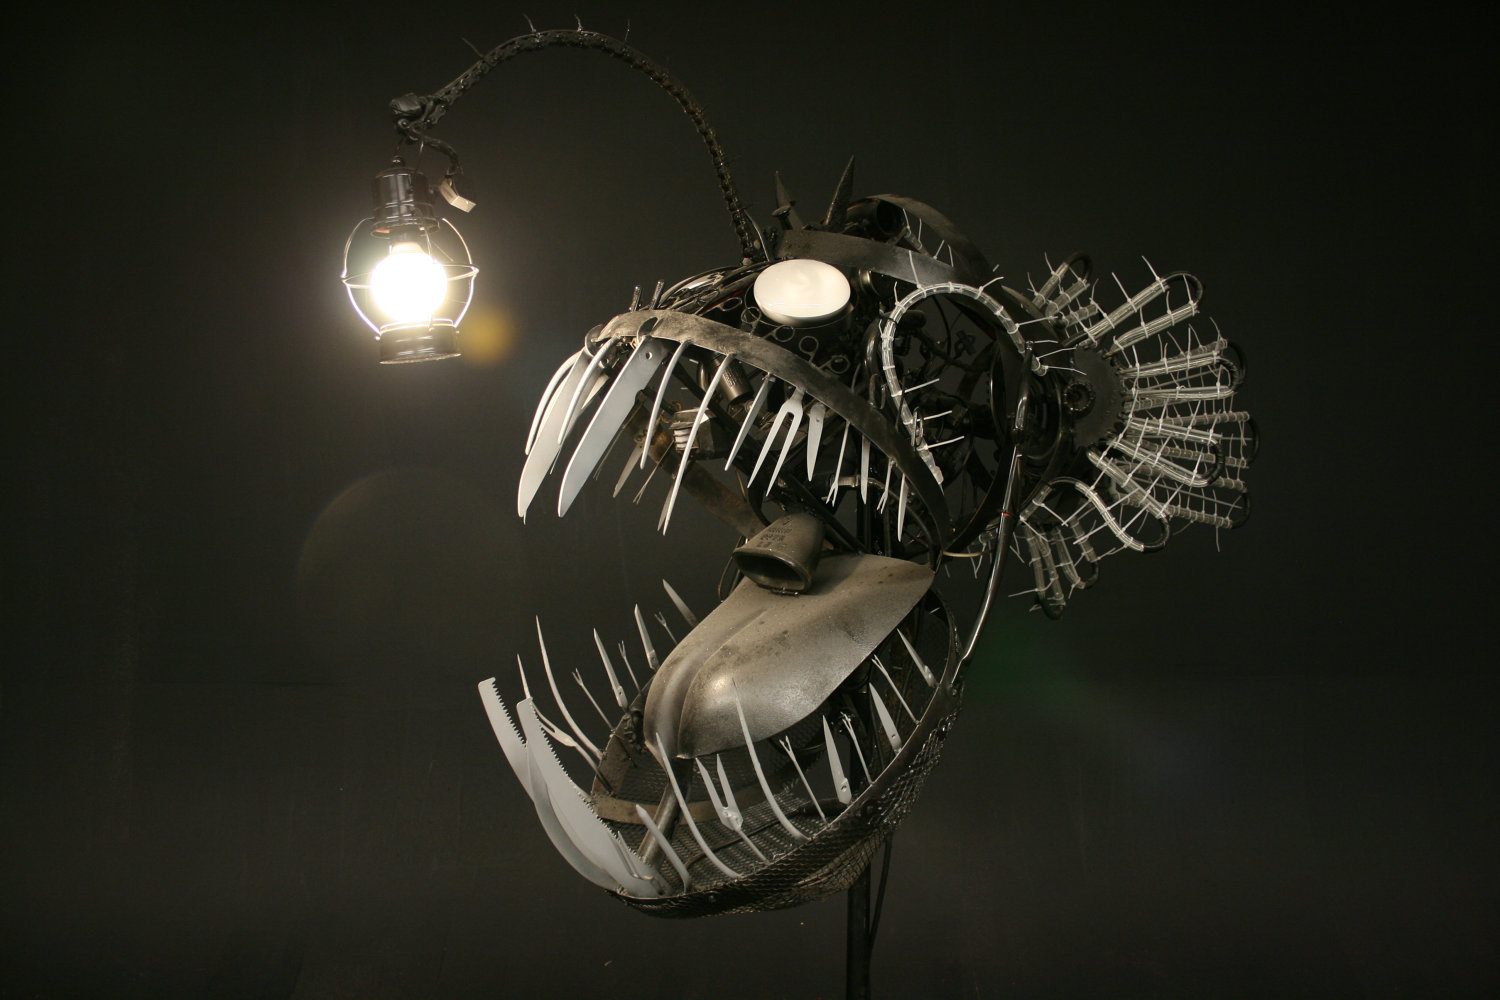 angler-fish-light | interior design ideas., Reel Combo